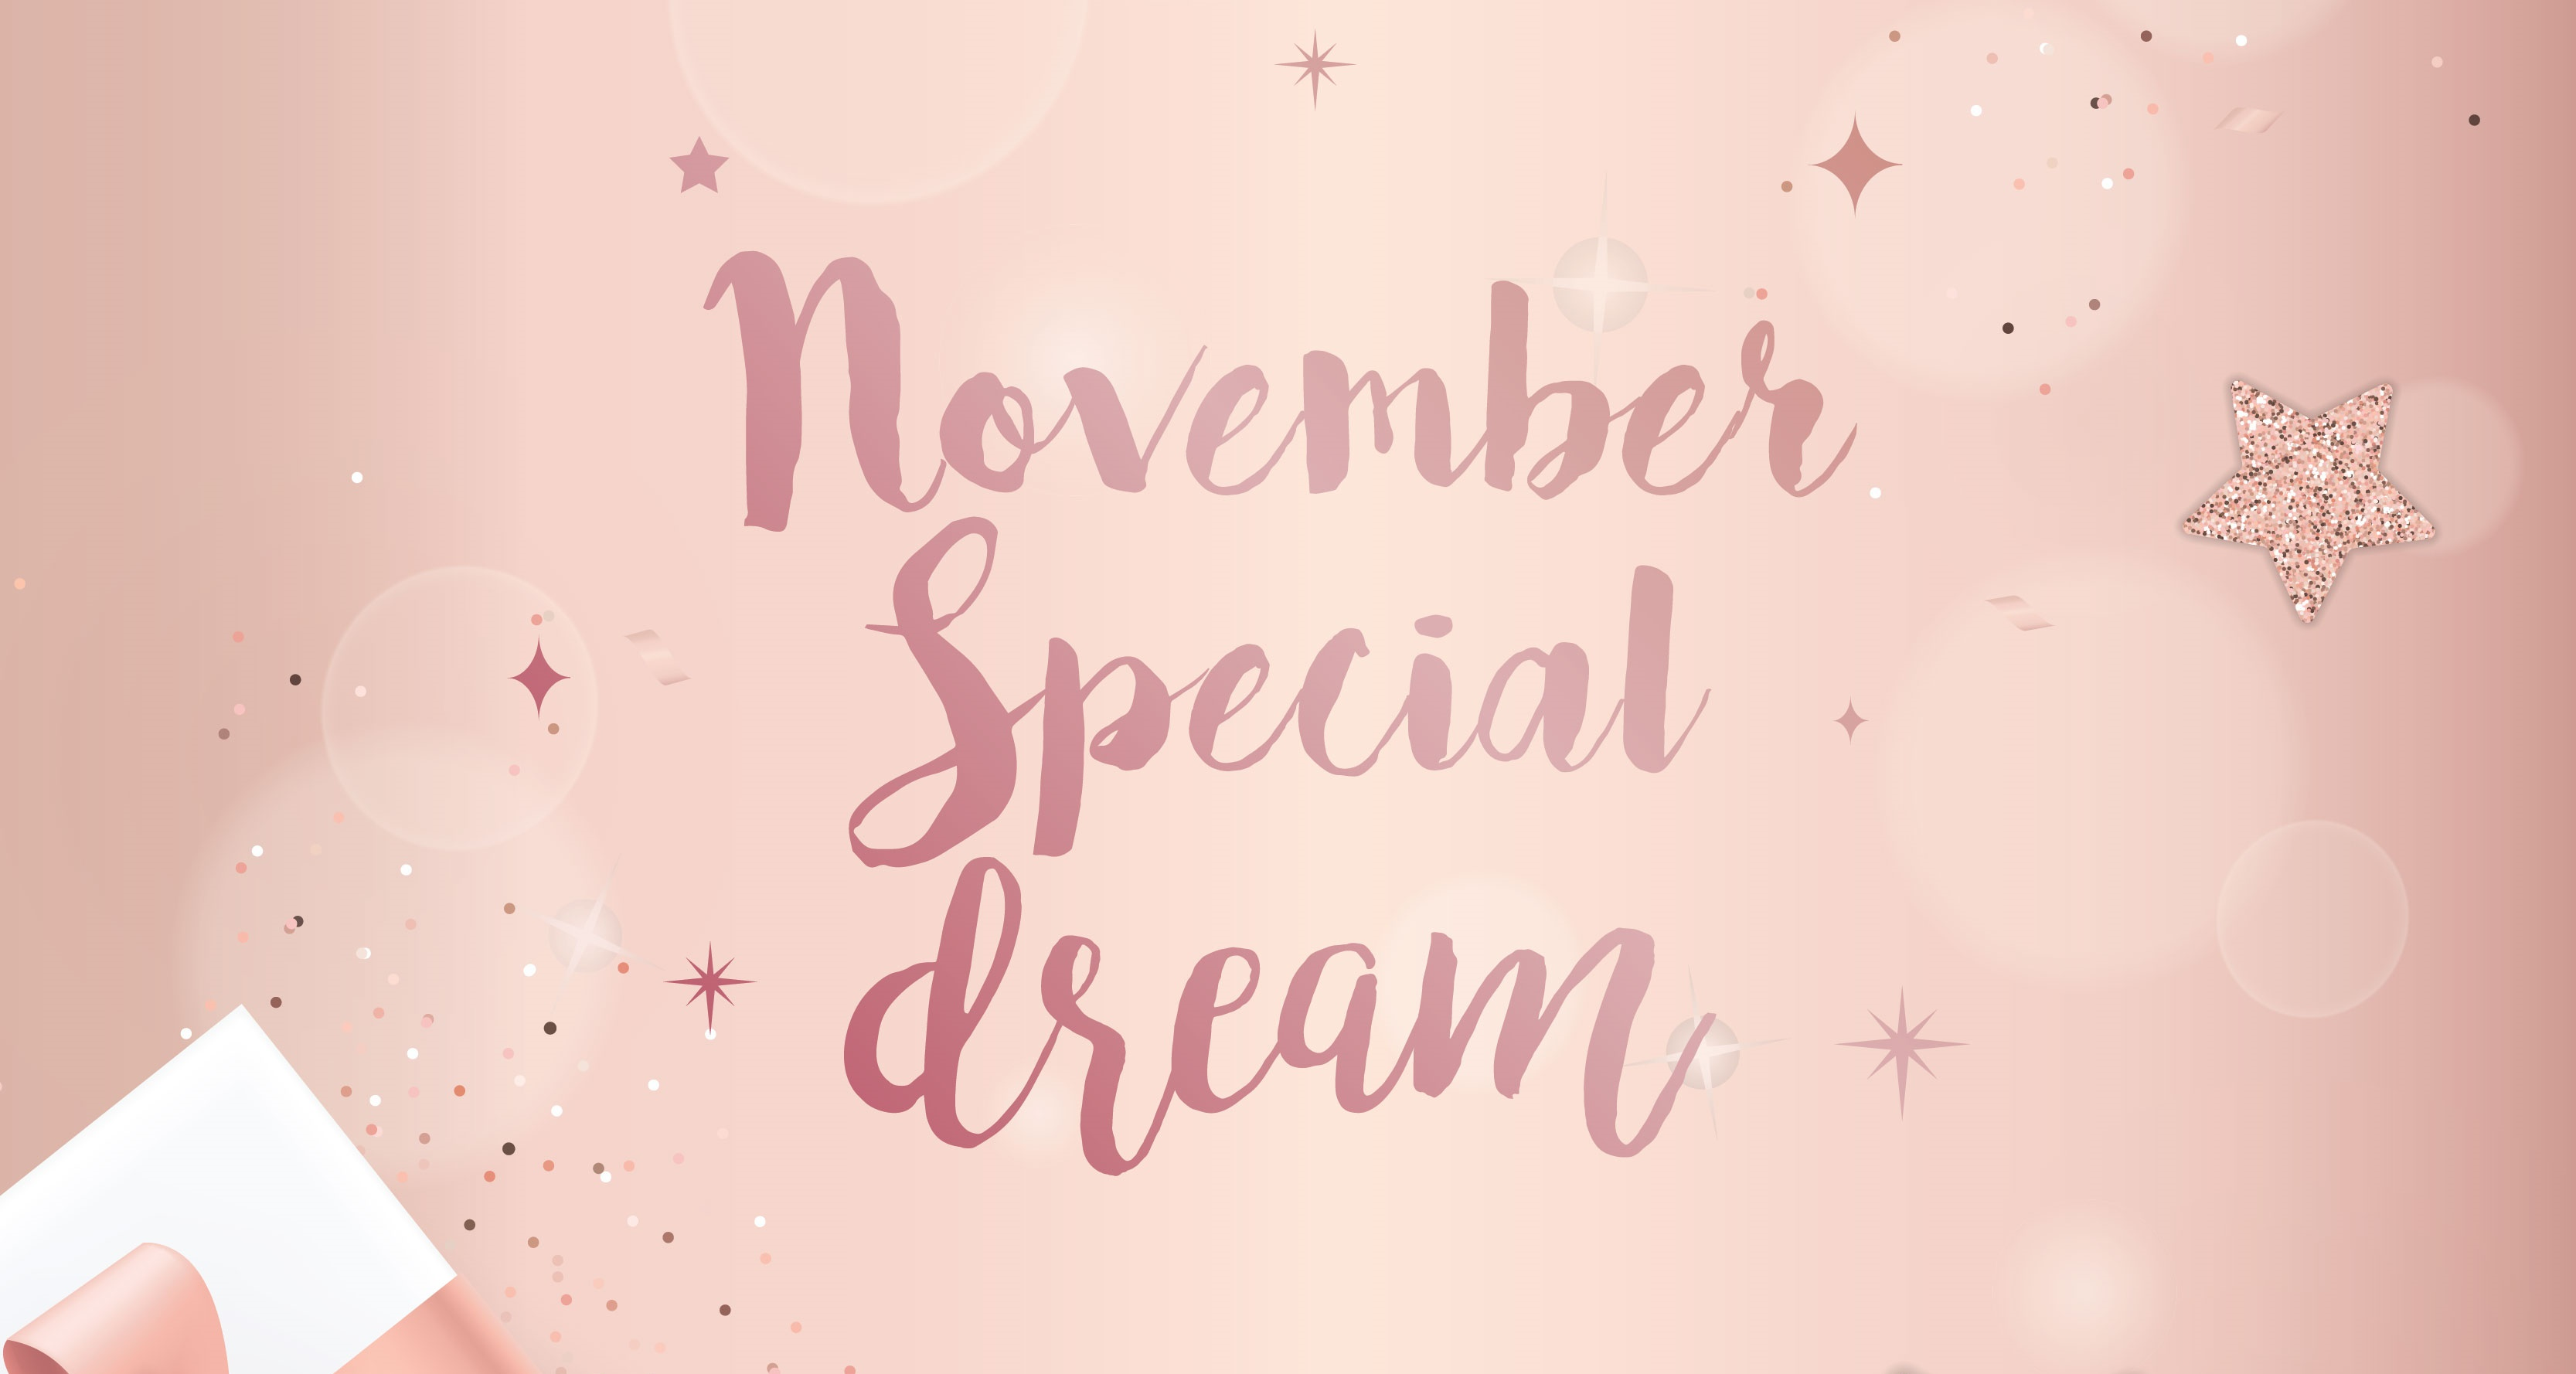 November Special Dream : Smeg Dream Price 2019